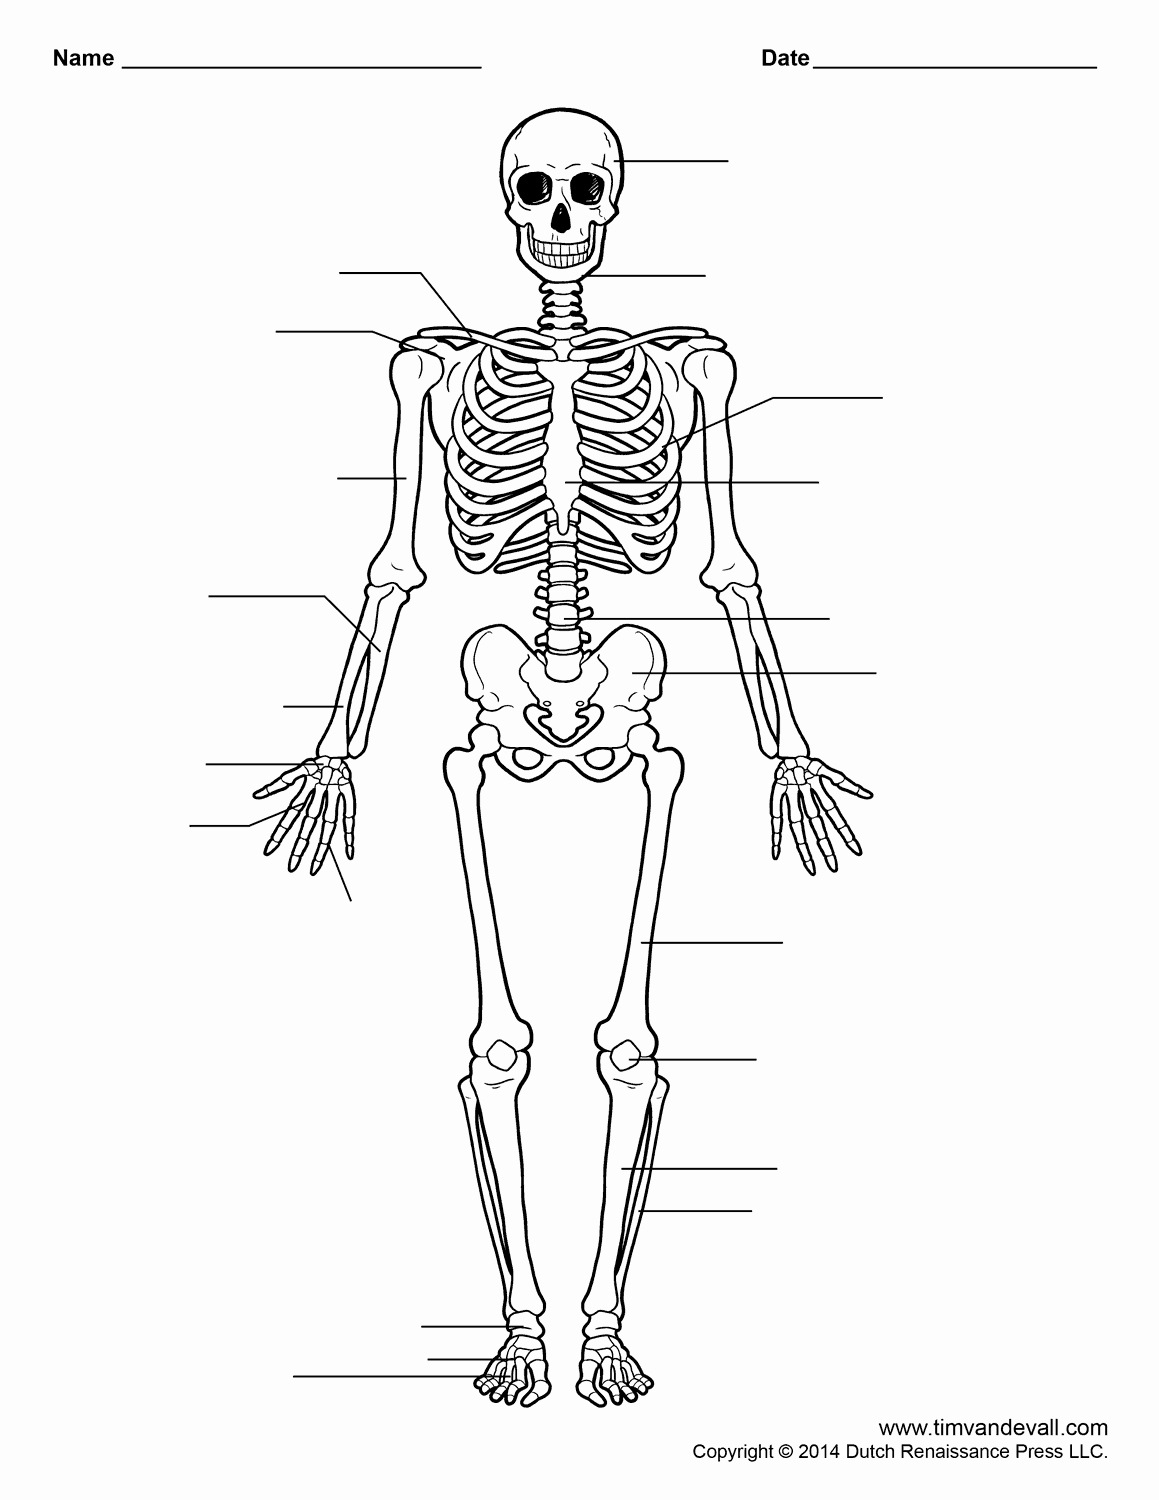 Appendicular Skeleton Worksheet Answers Fresh Free Printable Human Skeleton Worksheet for Students and